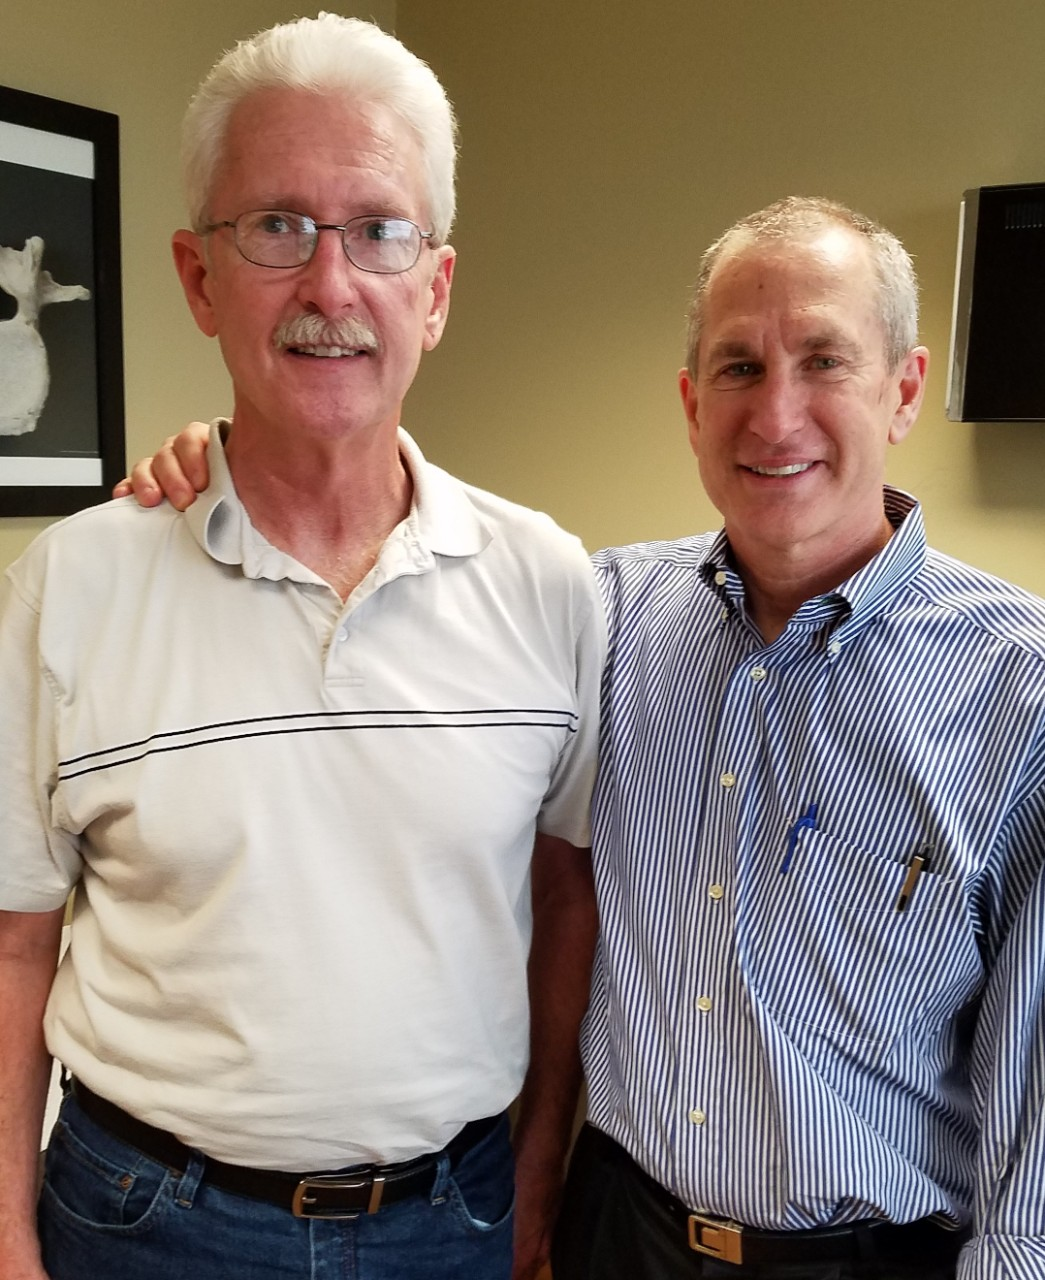 Robert Moore and John Wyrick standing together